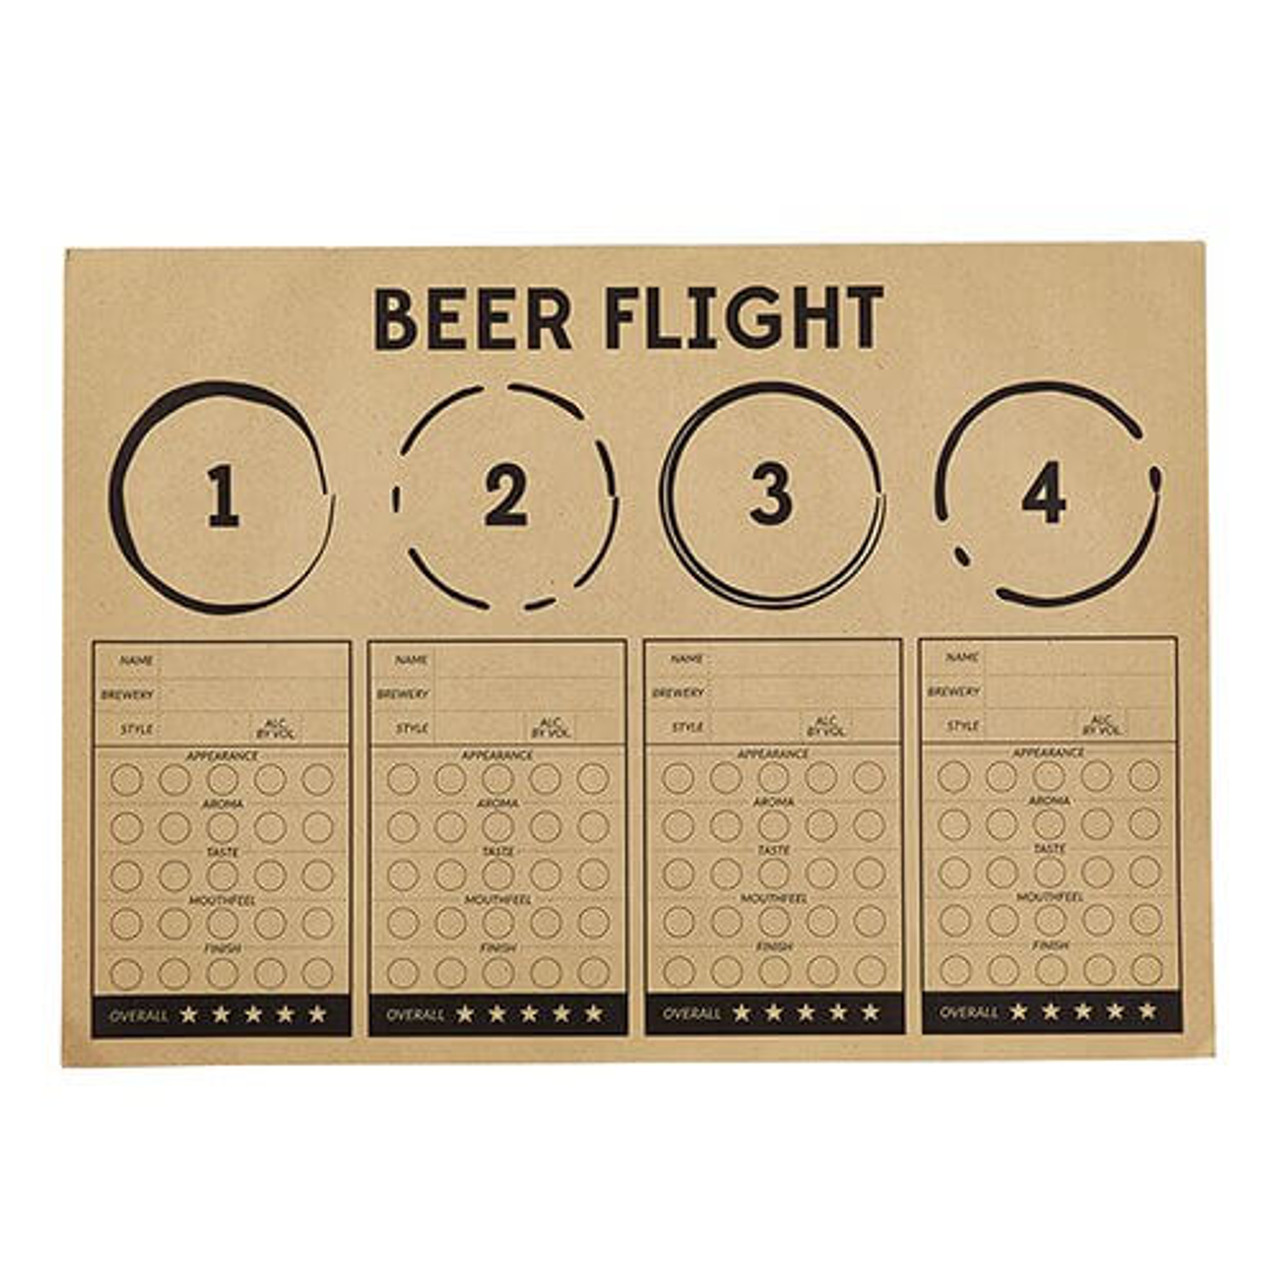 Taste and Record your favorite beers with Beer Flight Placemates! 24 sheets per pack.